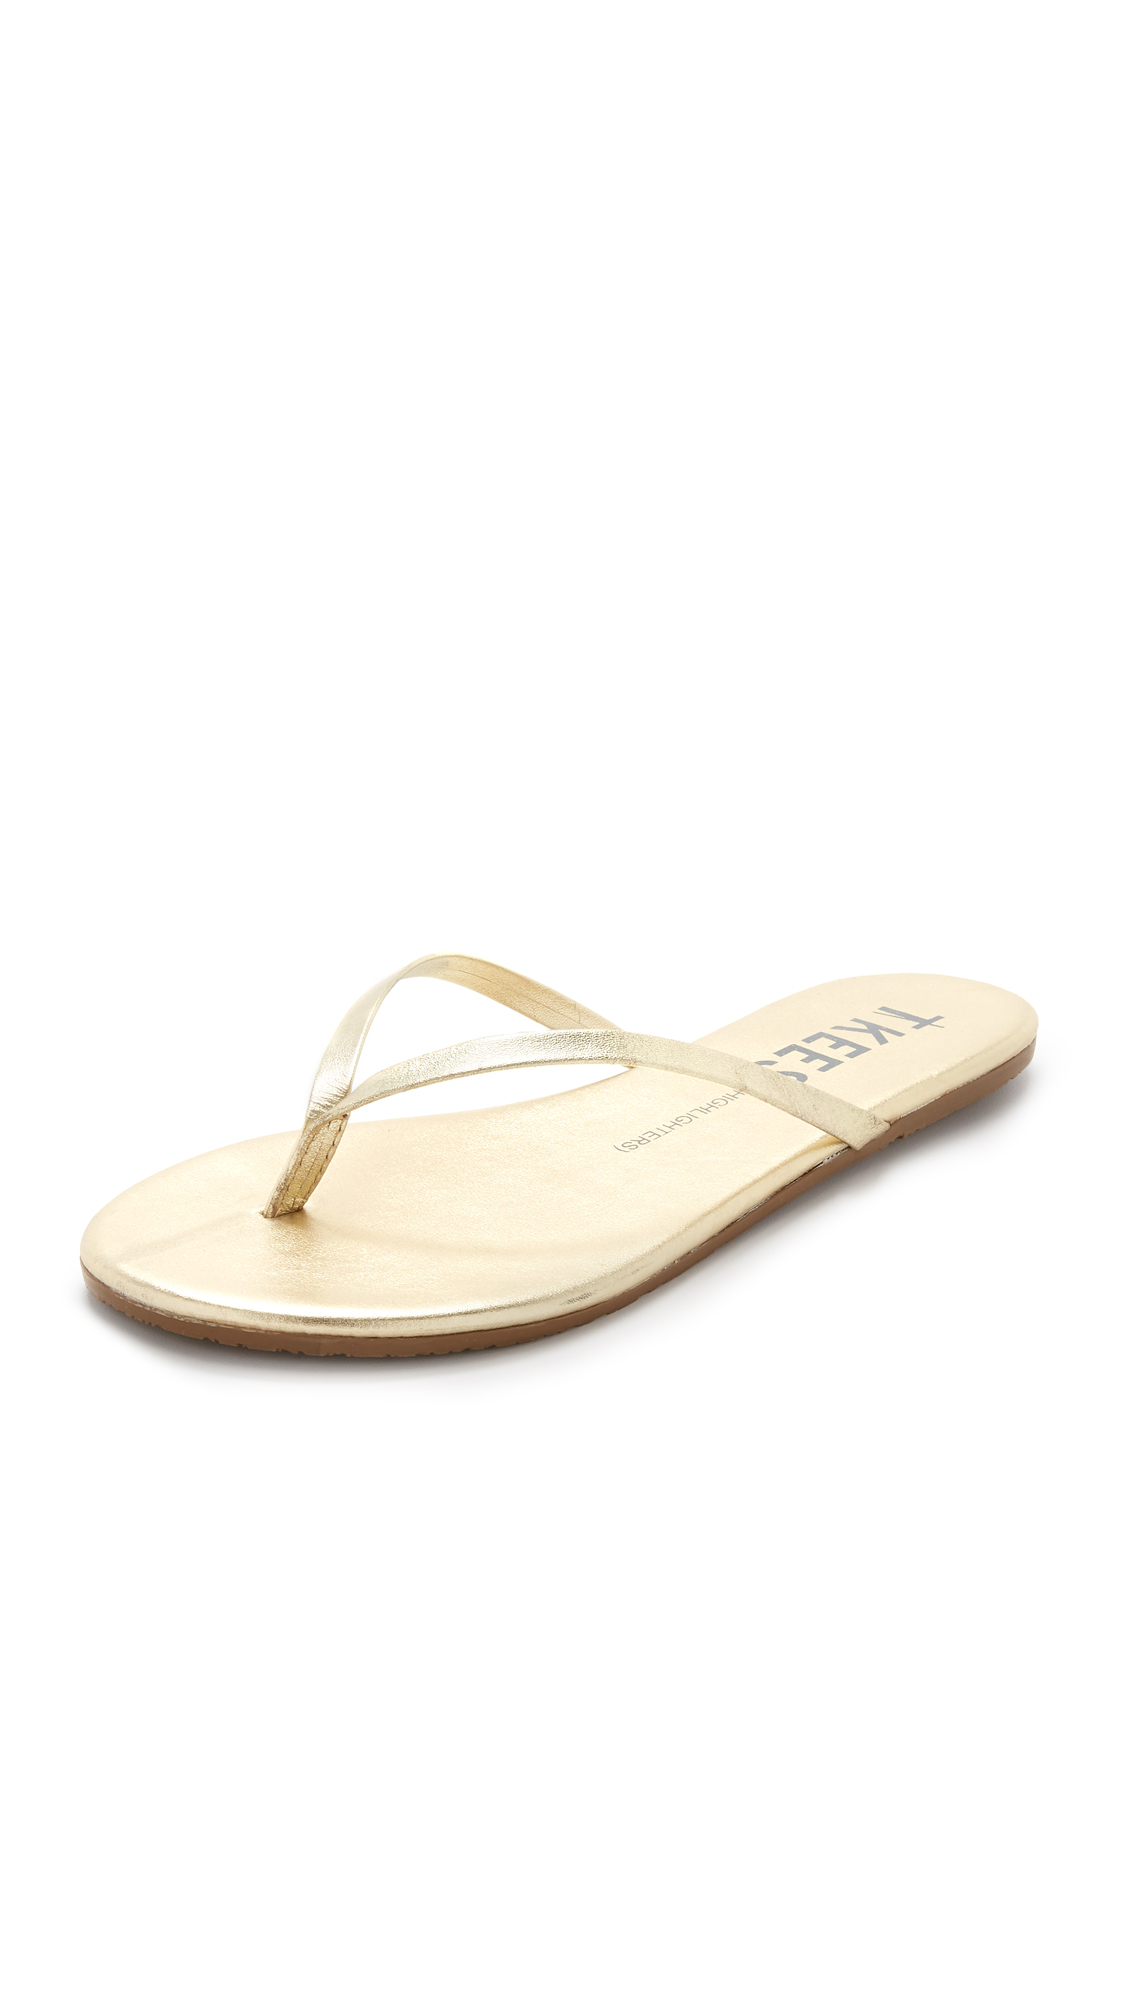 tkees female tkees highlighters flip flops blink